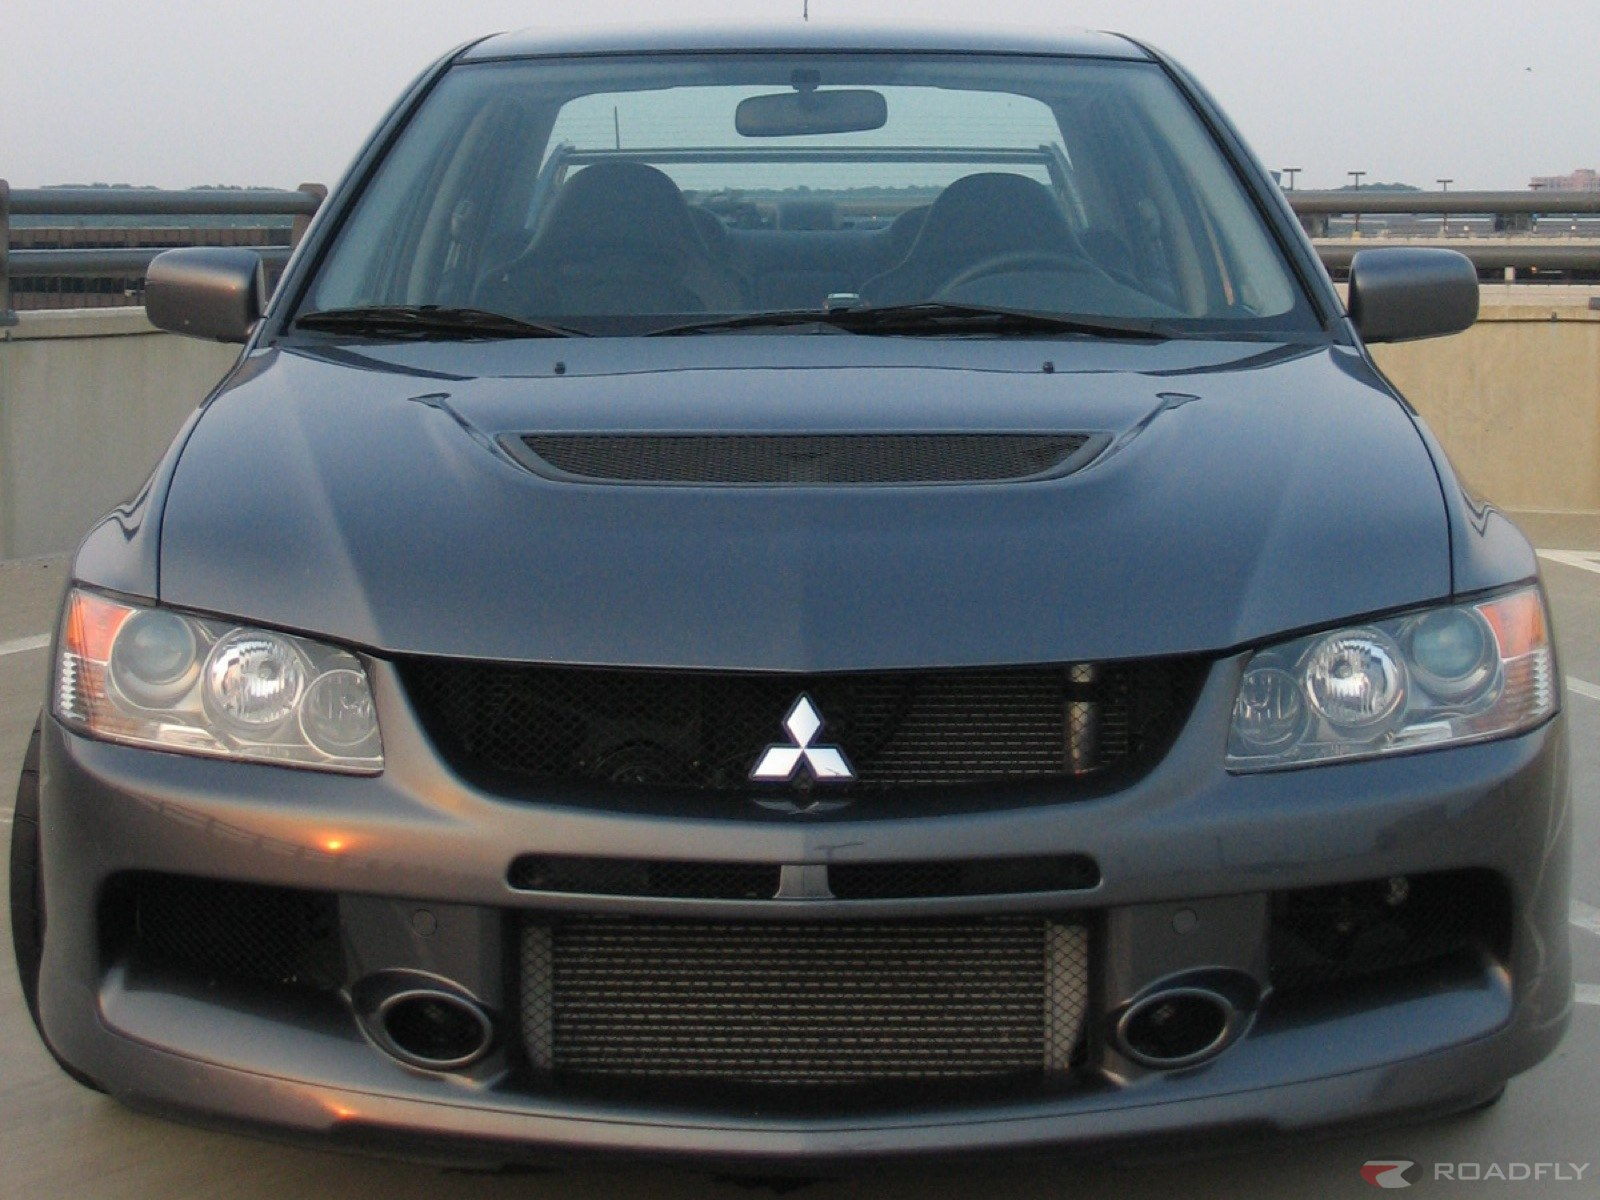 Mitsubishi Lancer Evo IX MR 870+Ps@11.000rpm (Boost 14psi)